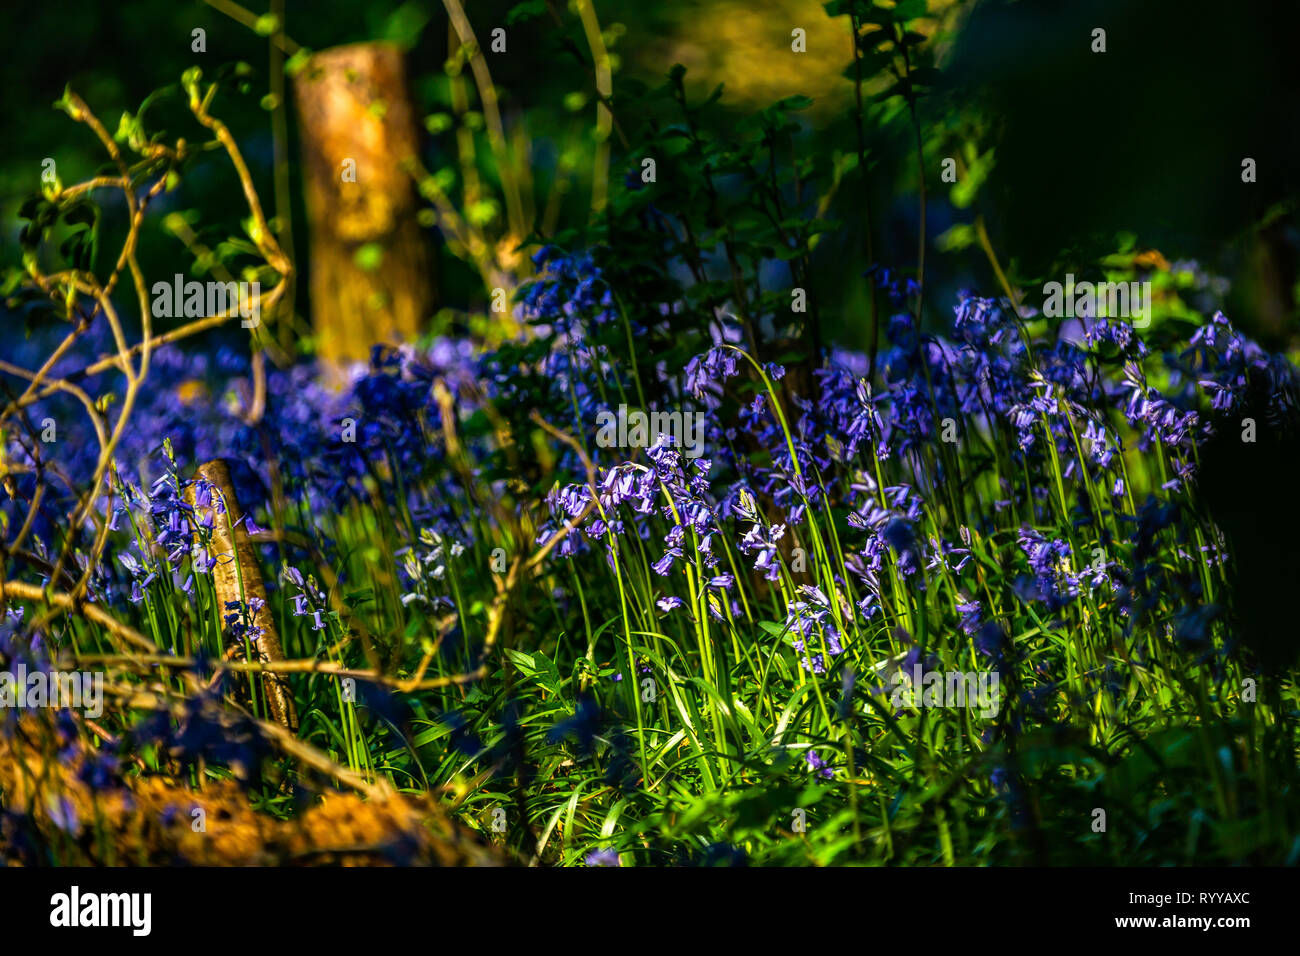 A carpet of bluebells in a wood or forest in the UK - Stock Image